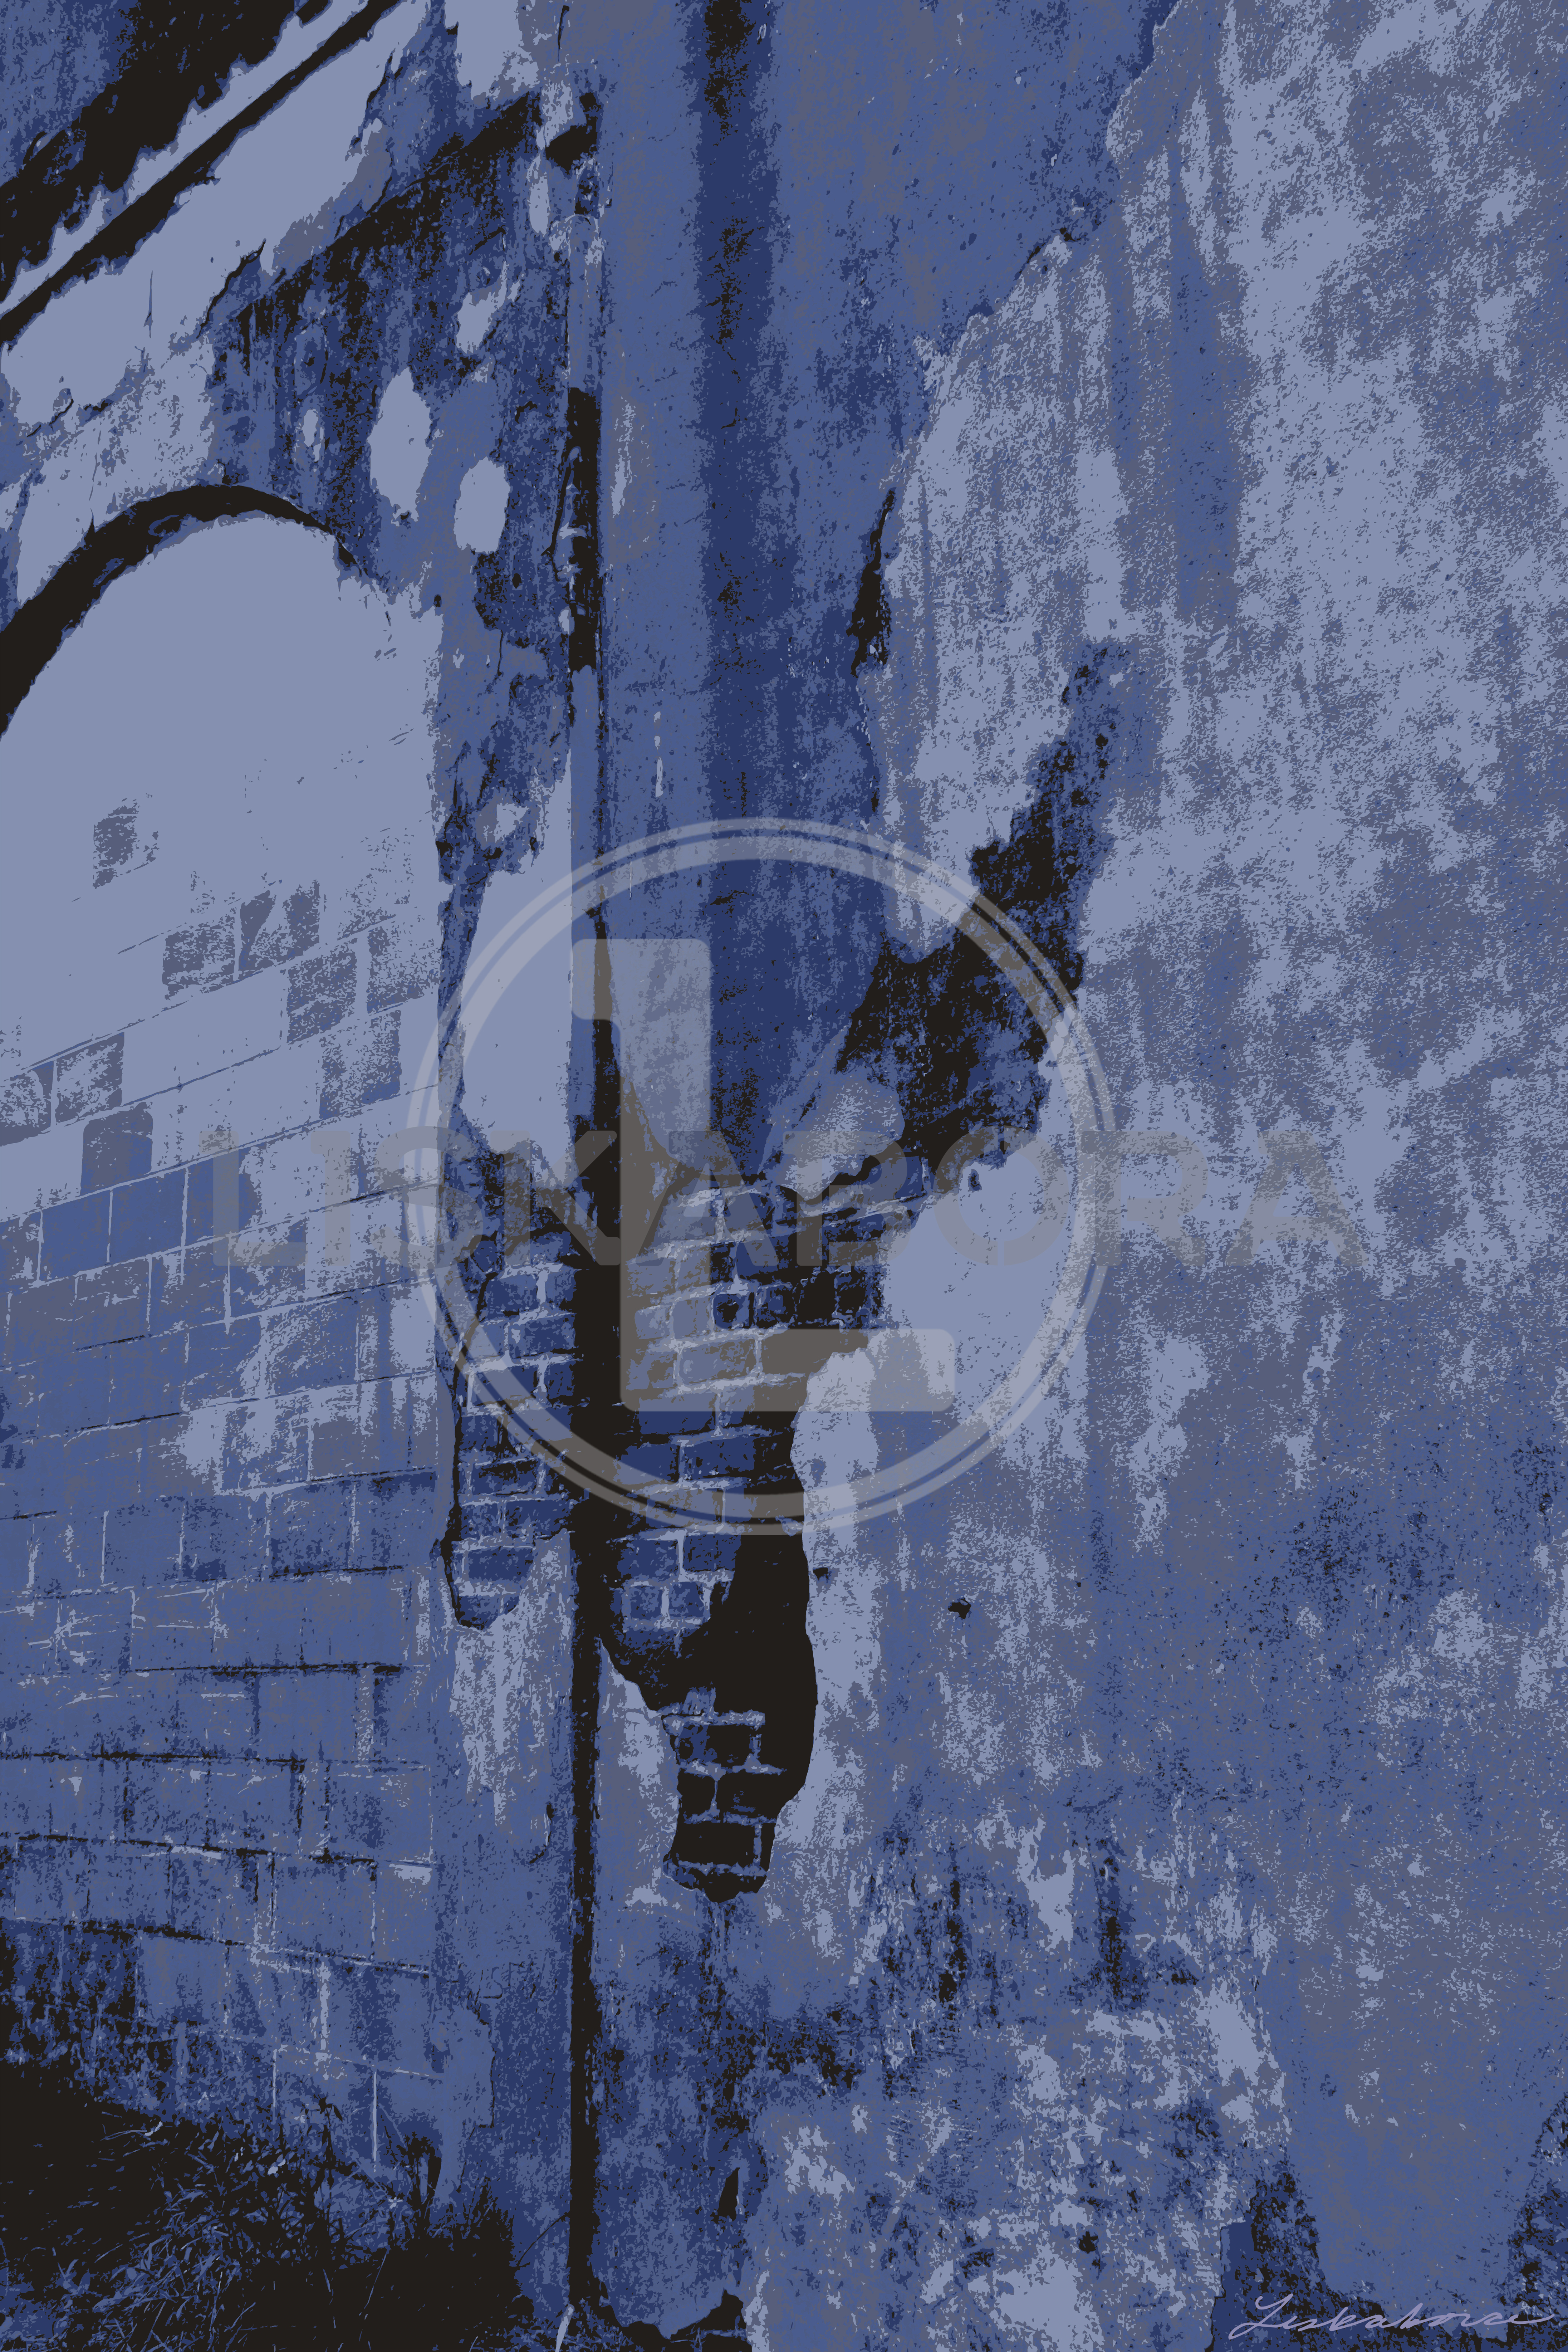 Rustic Crumbling Wall In Blue Architectural Photography